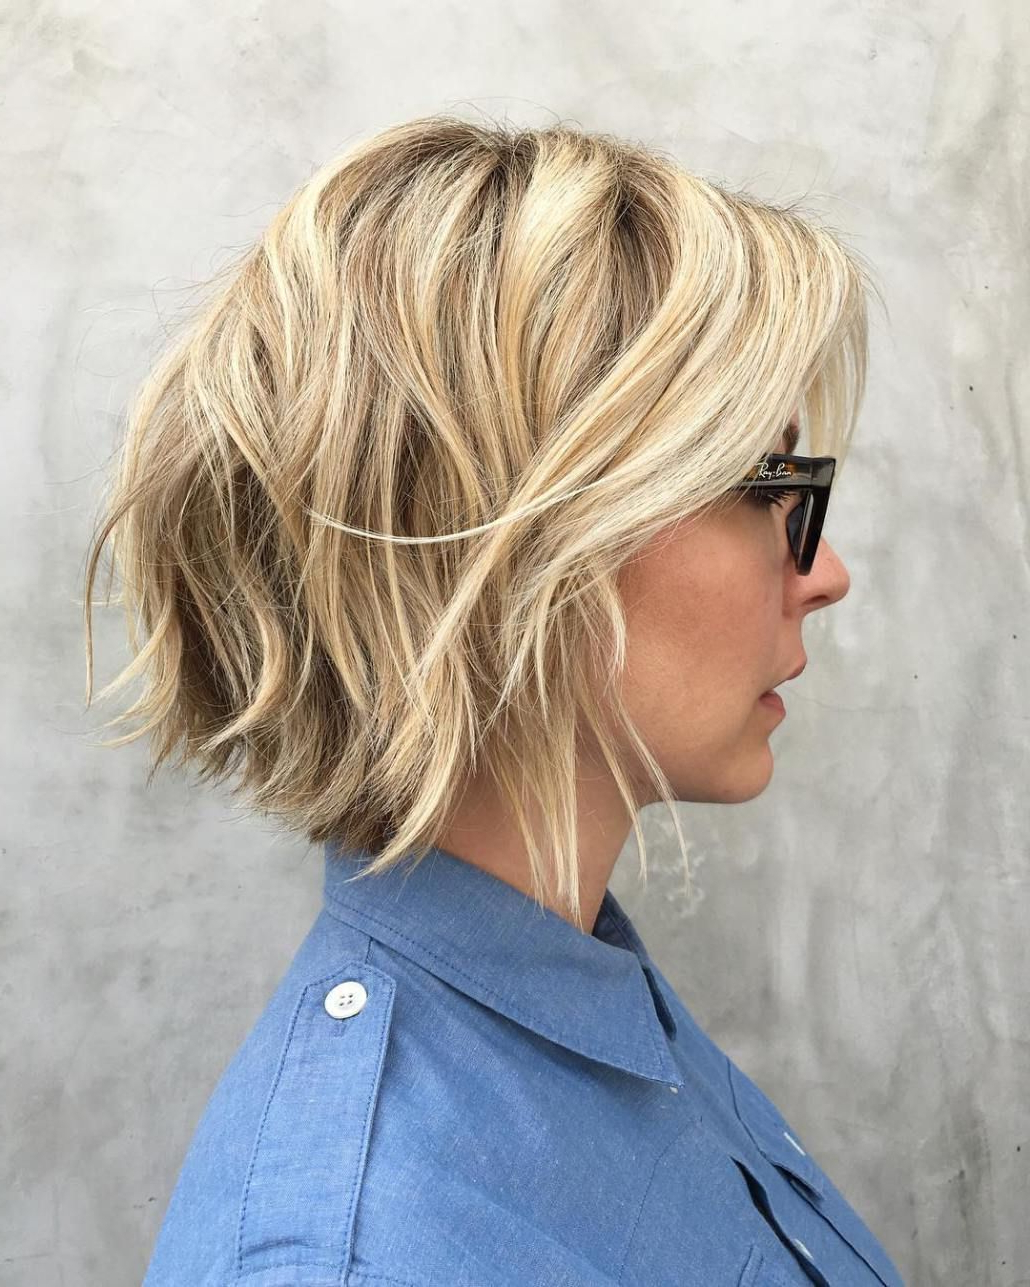 30 Trendiest Shaggy Bob Haircuts Of The Season In 2019 With Regard To Matte Shaggy Bob Hairstyles (View 8 of 20)